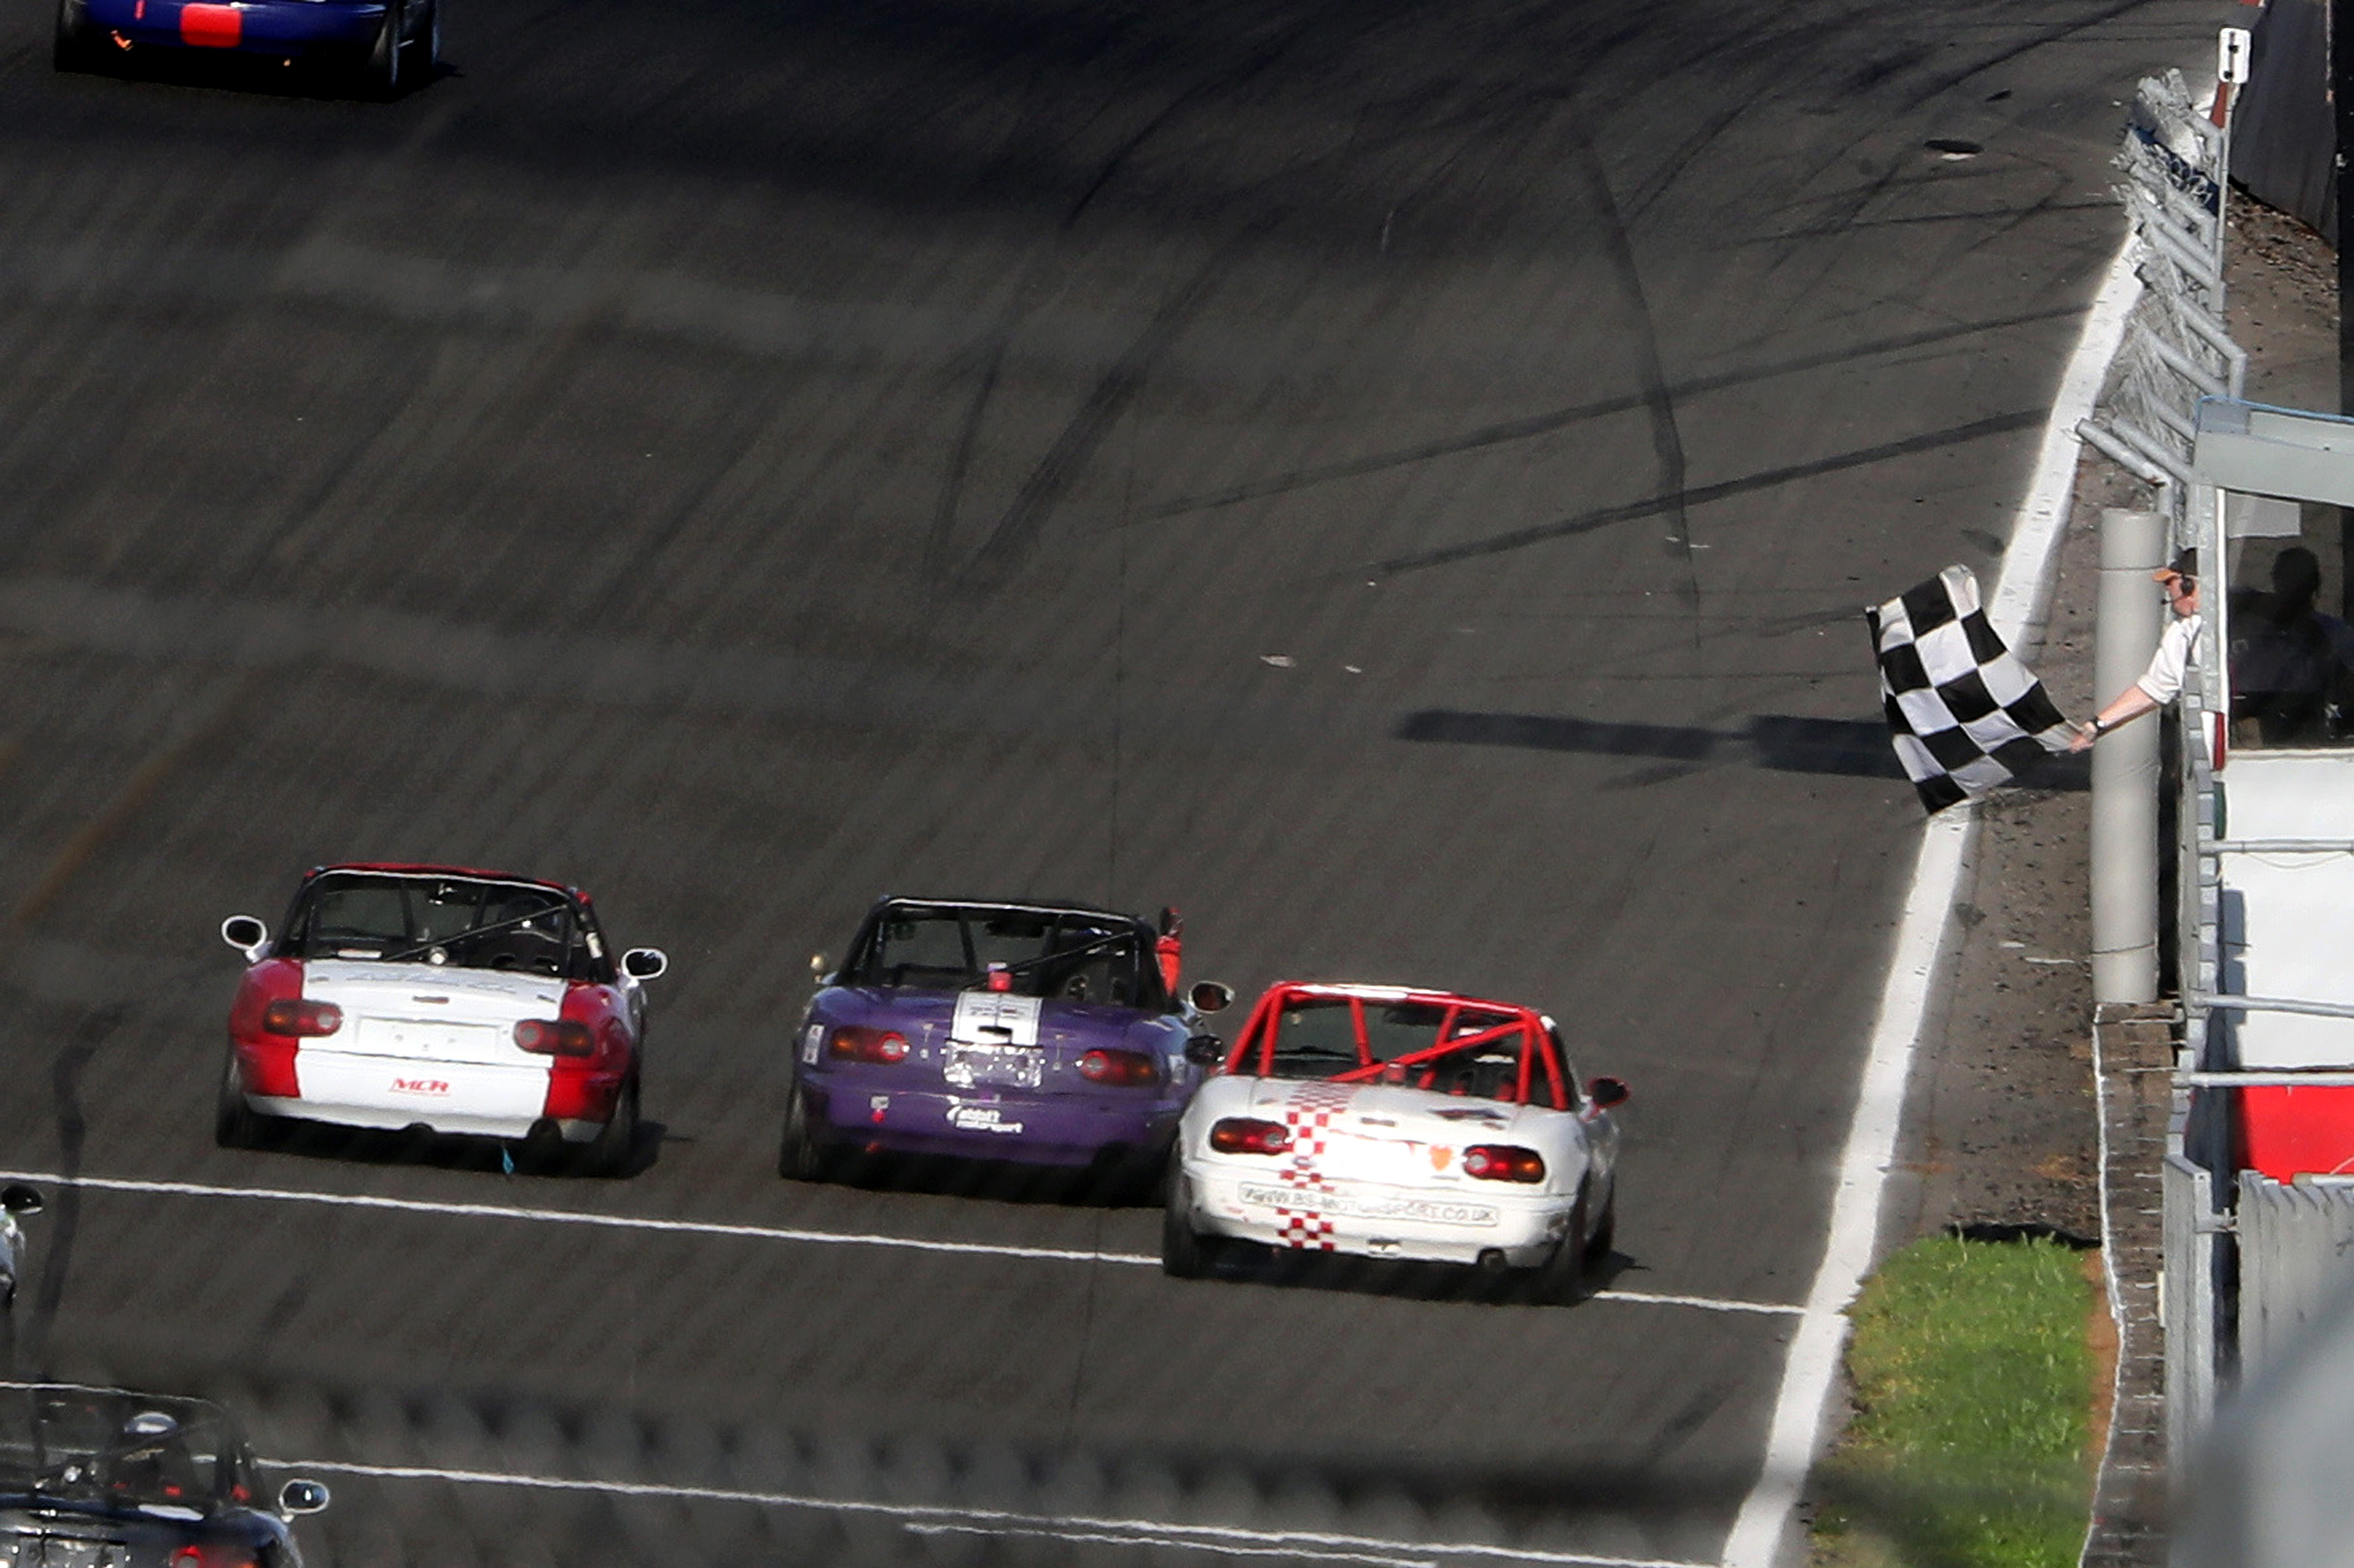 Ben Short (right) just missed out on race-one win to Ben Abbitt, but picked up the MX-5 Cup title. Brands Hatch 2021